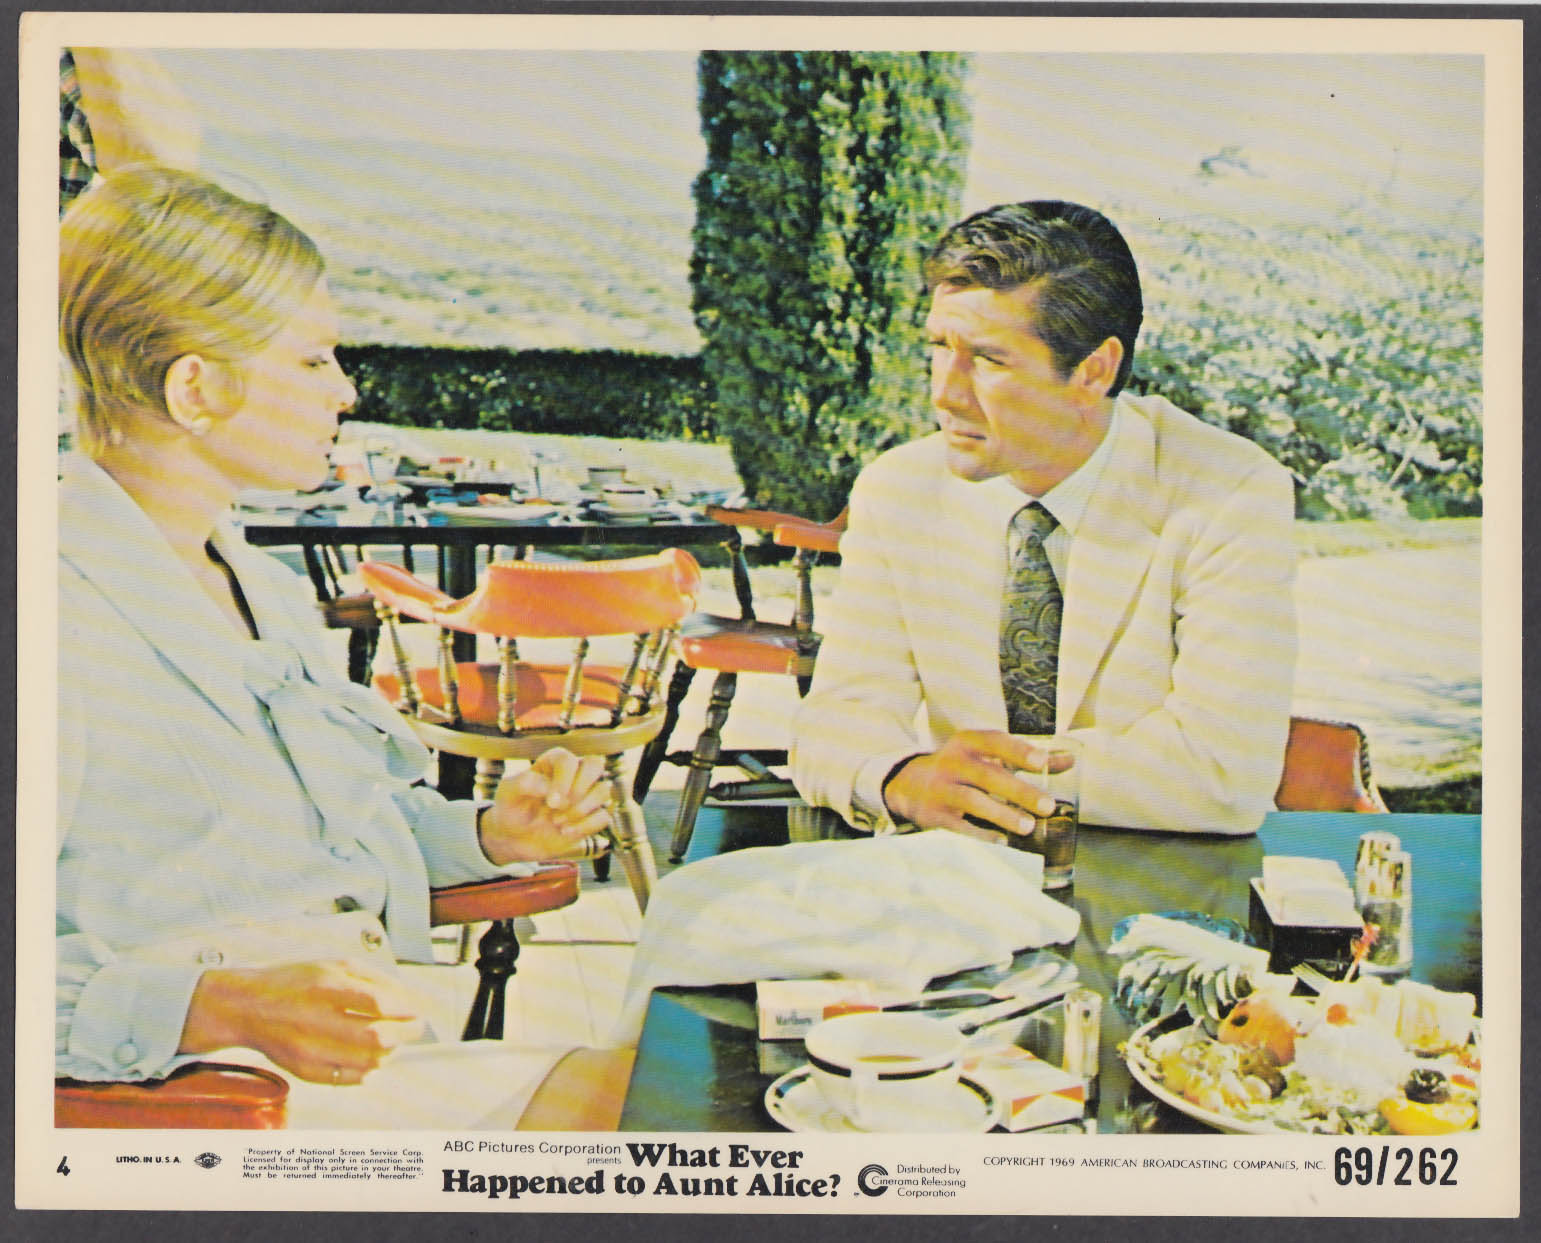 What Ever Happened to Aunt Alice? 8x10 lobby card 1969 Robert Fuller